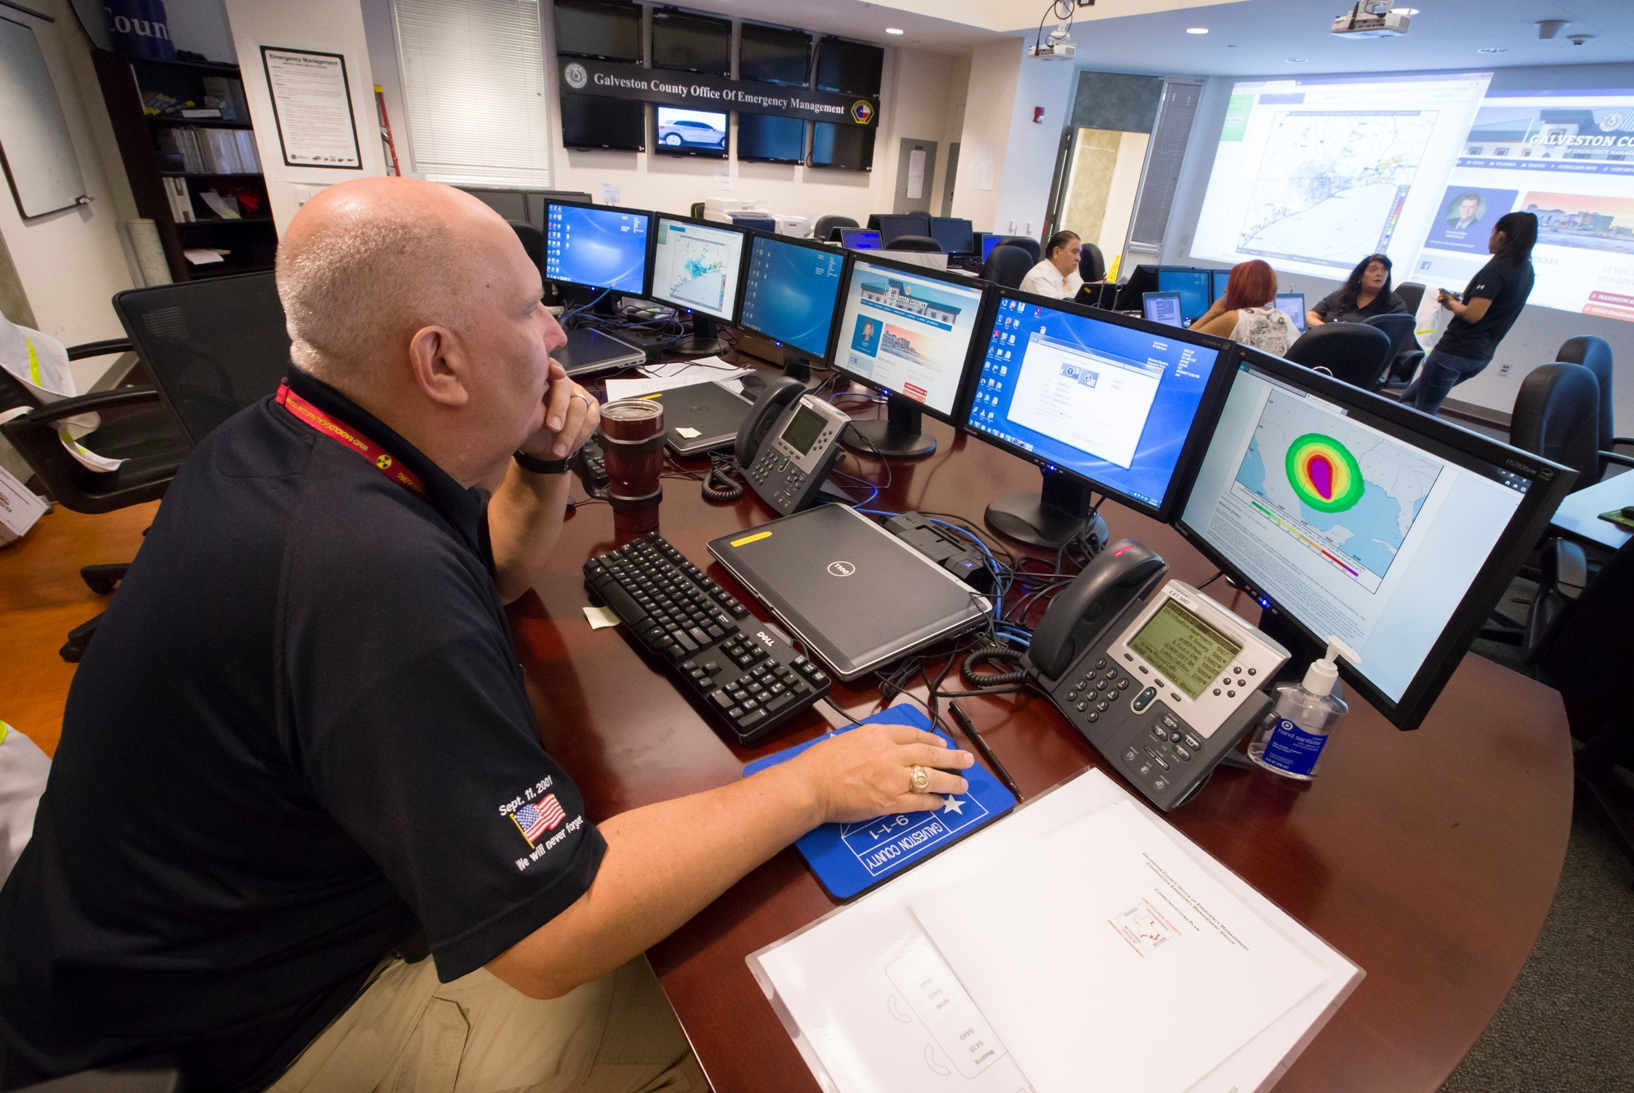 Michael Lambert, the emergency operations center controller at the Galveston County Office of Emergency Management, looks at a bank of monitors in center in Dickinson, Texas, Thursday, Aug. 24, 2017. (Stuart Villanueva/The Galveston County Daily News via AP)